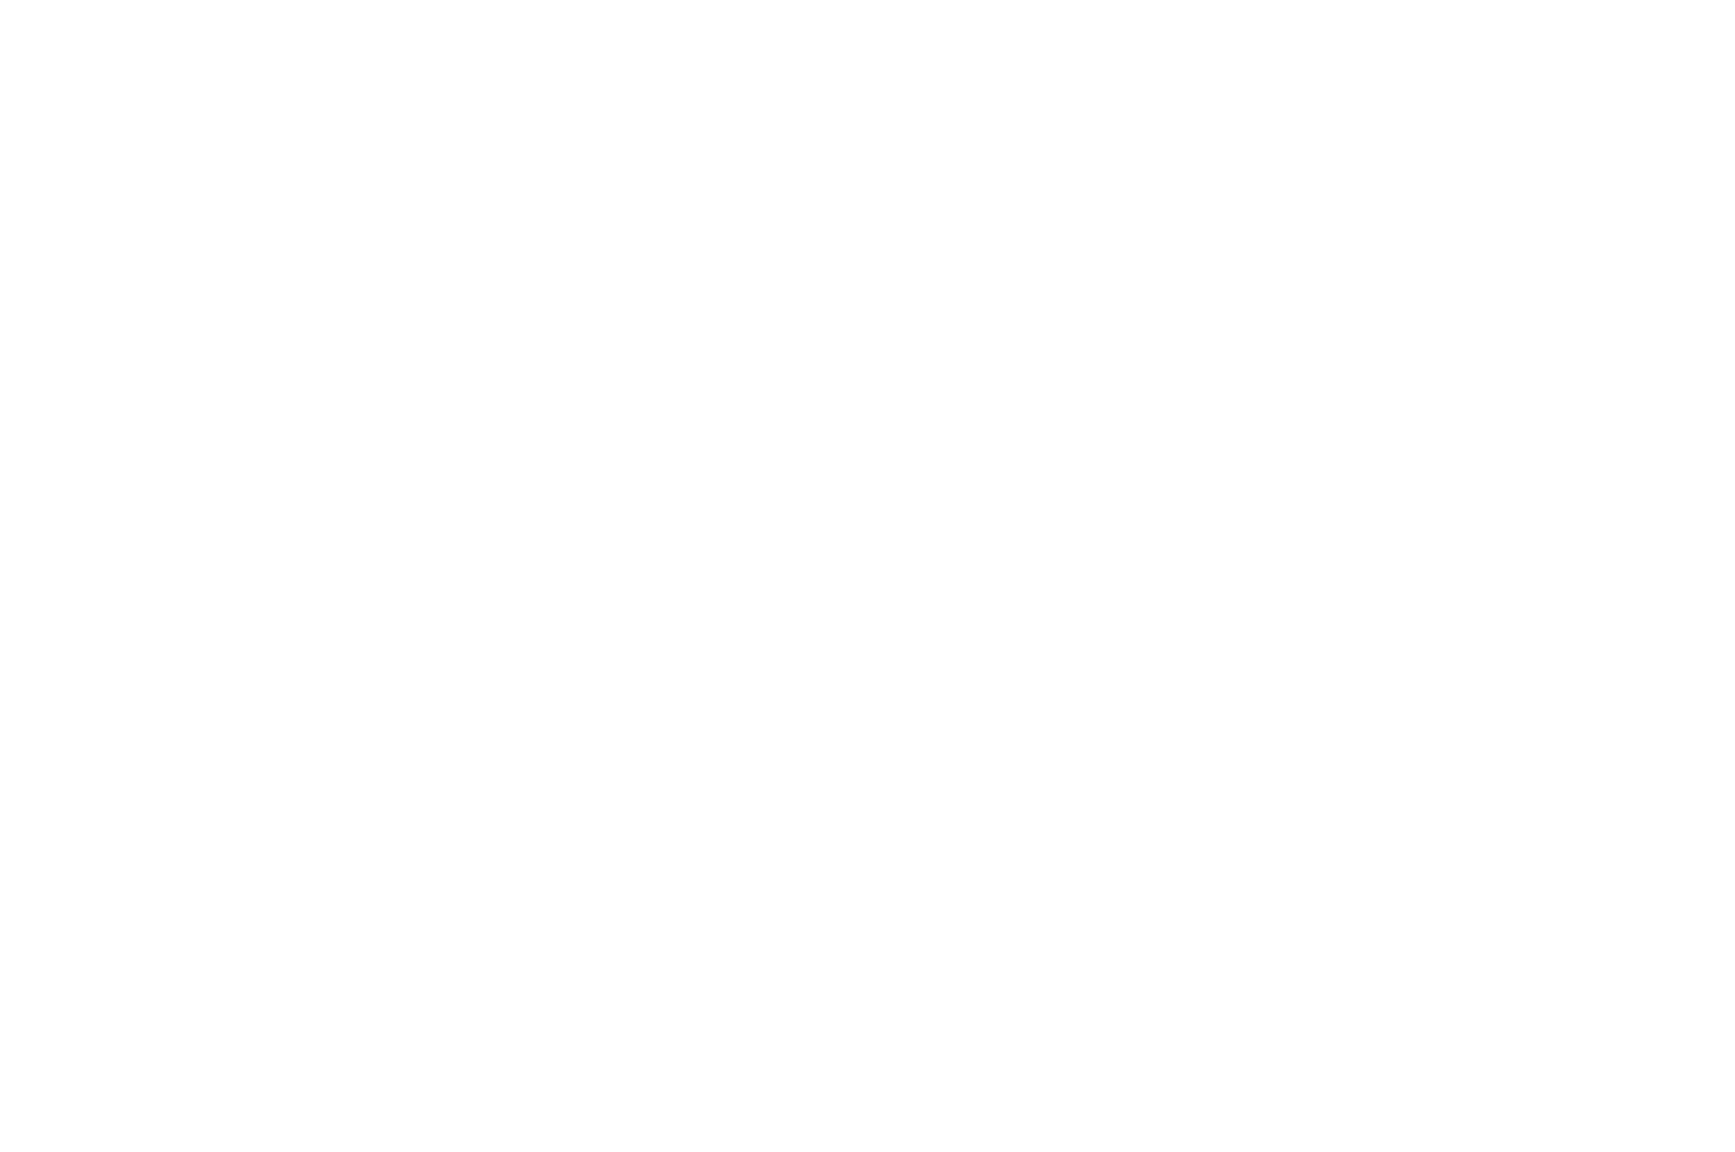 OFFICIAL SELECTION - CHURCHES MAKING MOVIES CHRISTIAN FILM FESTIVAL - 2017.png